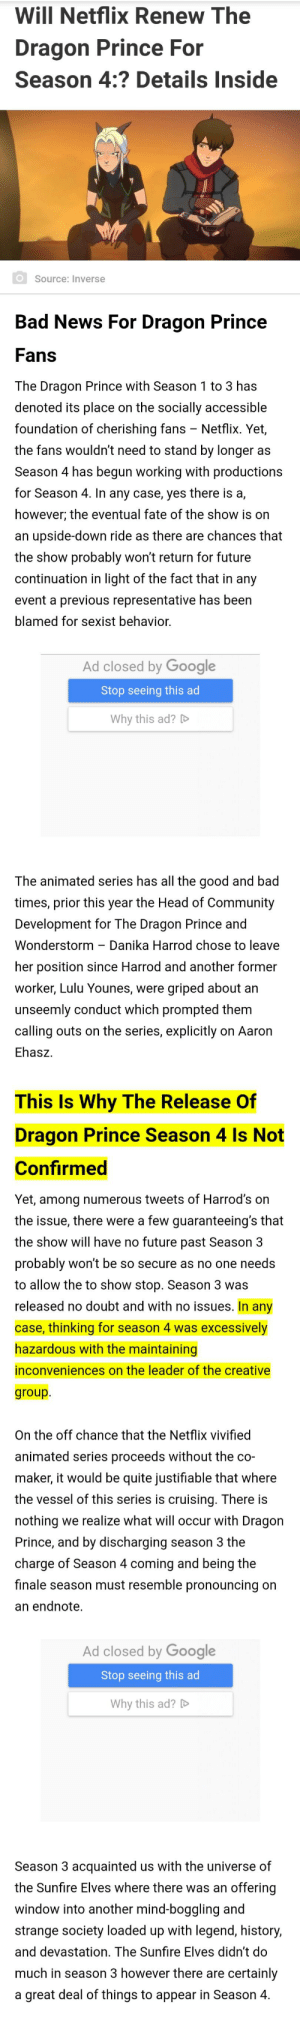 I just wanted a clear answer and Ankur let me down: Will Netflix Renew The  Dragon Prince For  Season 4:? Details Inside  Source: Inverse  Bad News For Dragon Prince  Fans  The Dragon Prince with Season 1 to 3 has  denoted its place on the socially accessible  foundation of cherishing fans - Netflix. Yet,  the fans wouldn't need to stand by longer as  Season 4 has begun working with productions  for Season 4. In any case, yes there is a,  however; the eventual fate of the show is on  an upside-down ride as there are chances that  the show probably won't return for future  continuation in light of the fact that in any  event a previous representative has been  blamed for sexist behavior.  Ad closed by Google  Stop seeing this ad  Why this ad? D  The animated series has all the good and bad  times, prior this year the Head of Community  Development for The Dragon Prince and  Wonderstorm – Danika Harrod chose to leave  her position since Harrod and another former  worker, Lulu Younes, were griped about an  unseemly conduct which prompted them  calling outs on the series, explicitly on Aaron  Ehasz.  This Is Why The Release Of  Dragon Prince Season 4 Is Not  Confirmed  Yet, among numerous tweets of Harrod's on  the issue, there were a few guaranteeing's that  the show will have no future past Season 3  probably won't be so secure as no one needs  to allow the to show stop. Season 3 was  released no doubt and with no issues. In any  case, thinking for season 4 was excessively  hazardous with the maintaining  inconveniences on the leader of the creative  group.  On the off chance that the Netflix vivified  animated series proceeds without the co-  maker, it would be quite justifiable that where  the vessel of this series is cruising. There is  nothing we realize what will occur with Dragon  Prince, and by discharging season 3 the  charge of Season 4 coming and being the  finale season must resemble pronouncing on  an endnote.  Ad closed by Google  Stop seeing this ad  Why